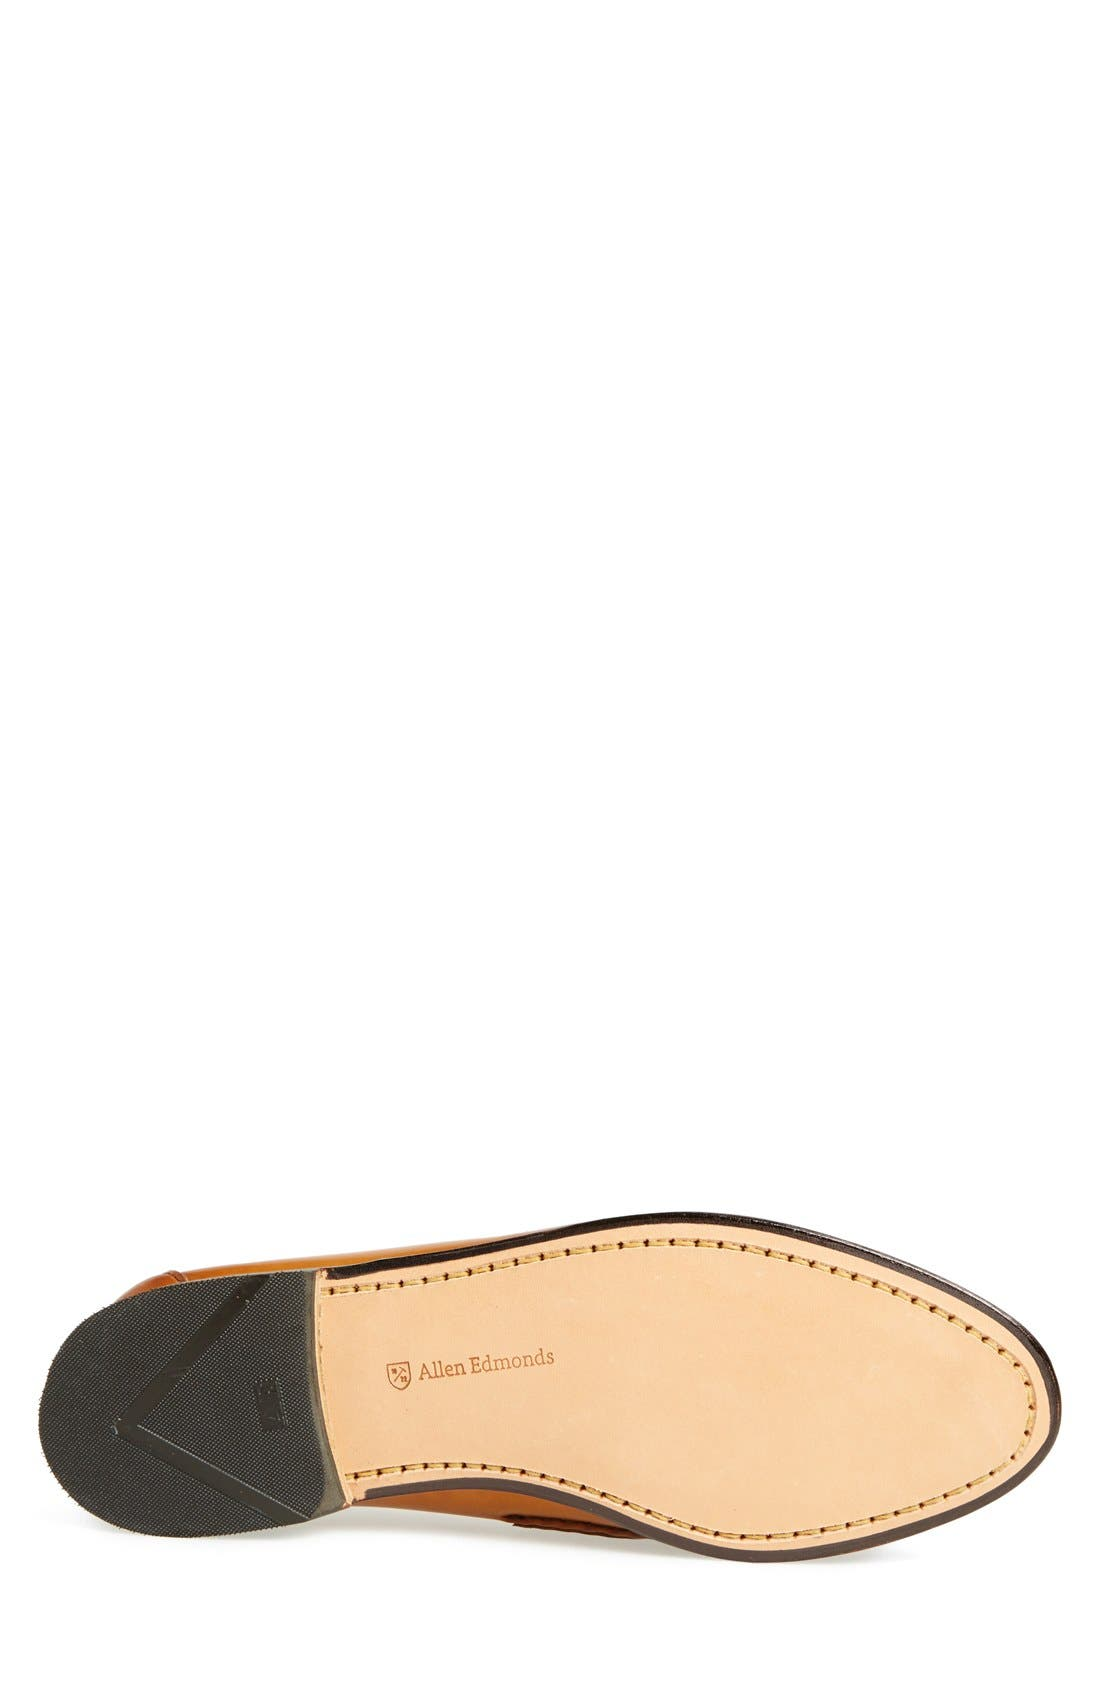 'Cavanaugh' Penny Loafer,                             Alternate thumbnail 4, color,                             WALNUT LEATHER